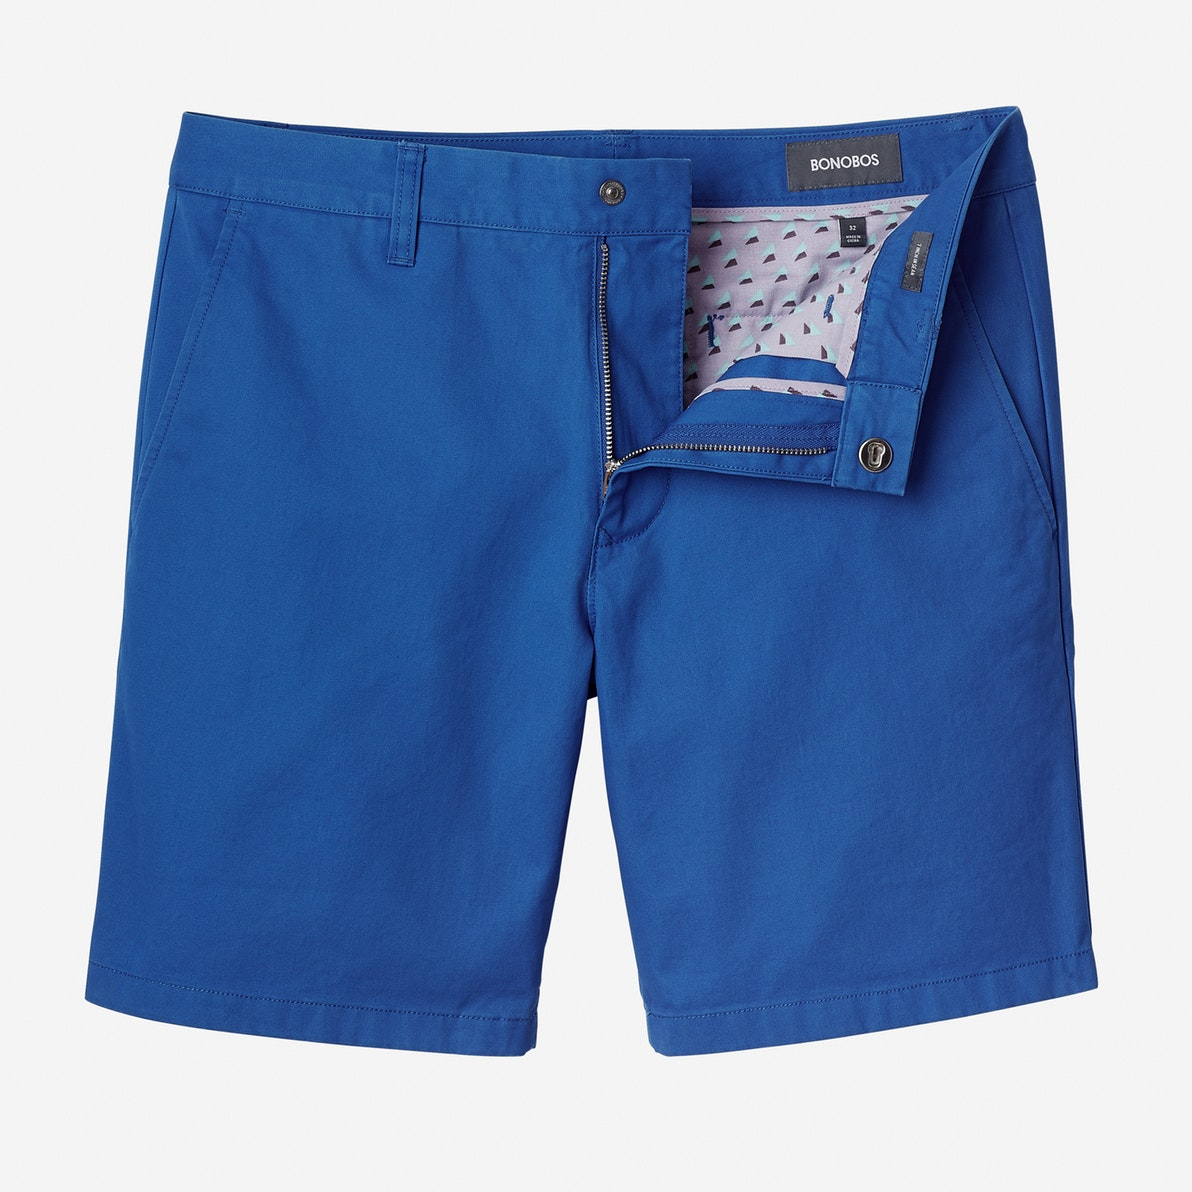 Shorts_Solid-Chino-Short_15042-BLW49_40_category-outfitter.jpg